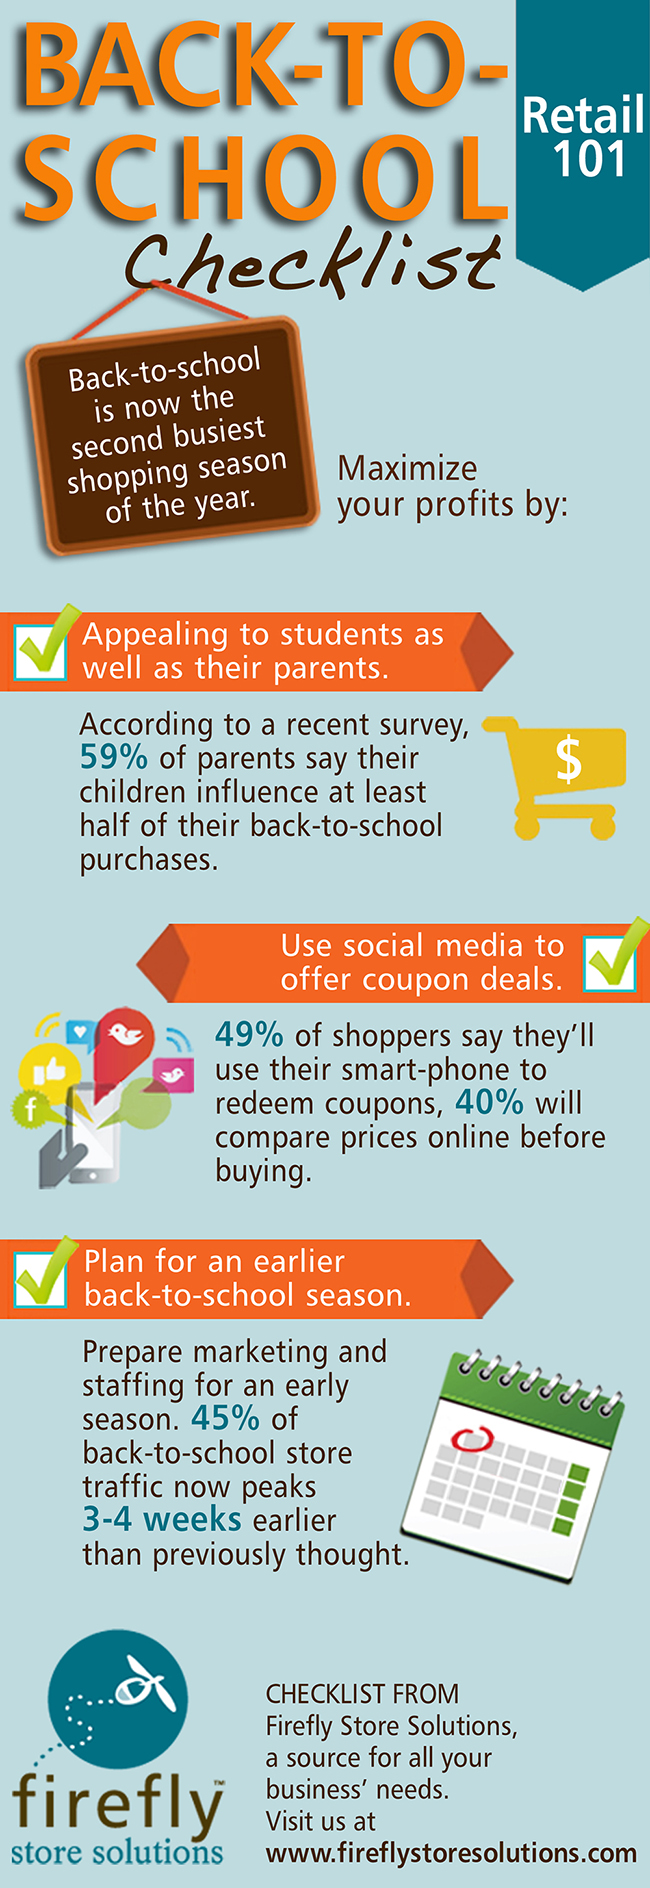 back-to-school retail infographic